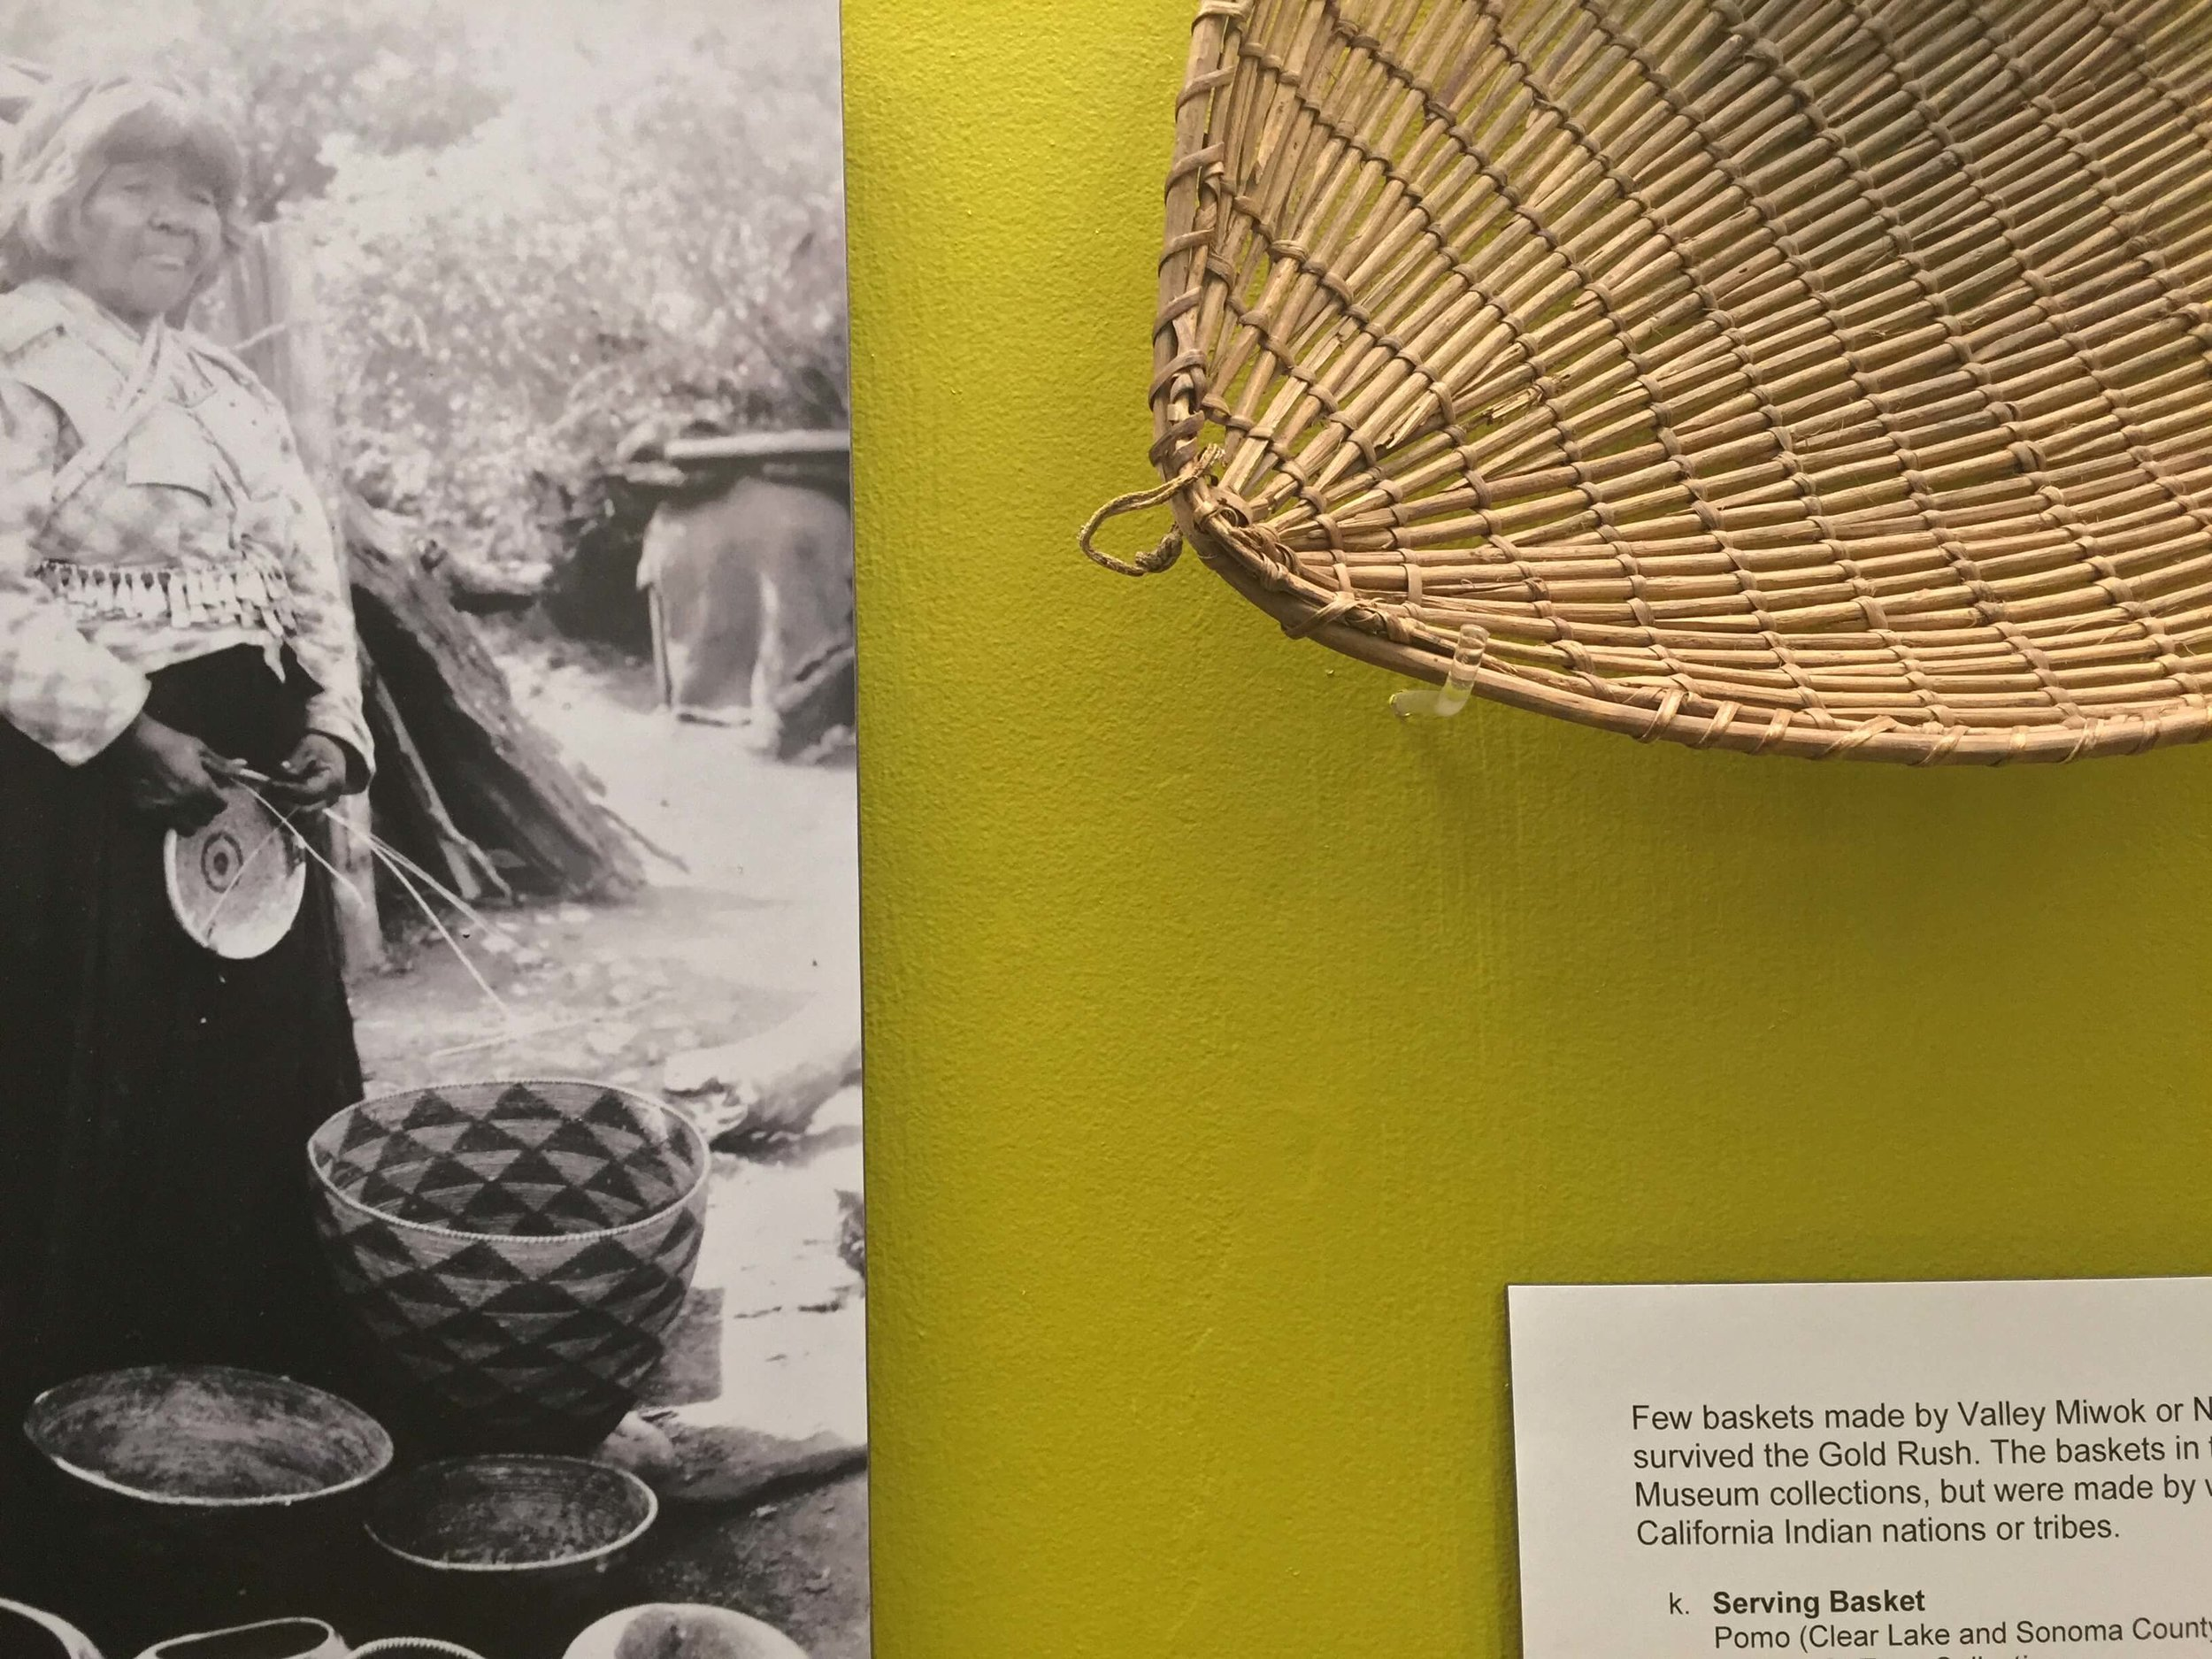 5-San Joaquin County-Historical Museum-The Sibbett Group-Cooking-Basket.jpg